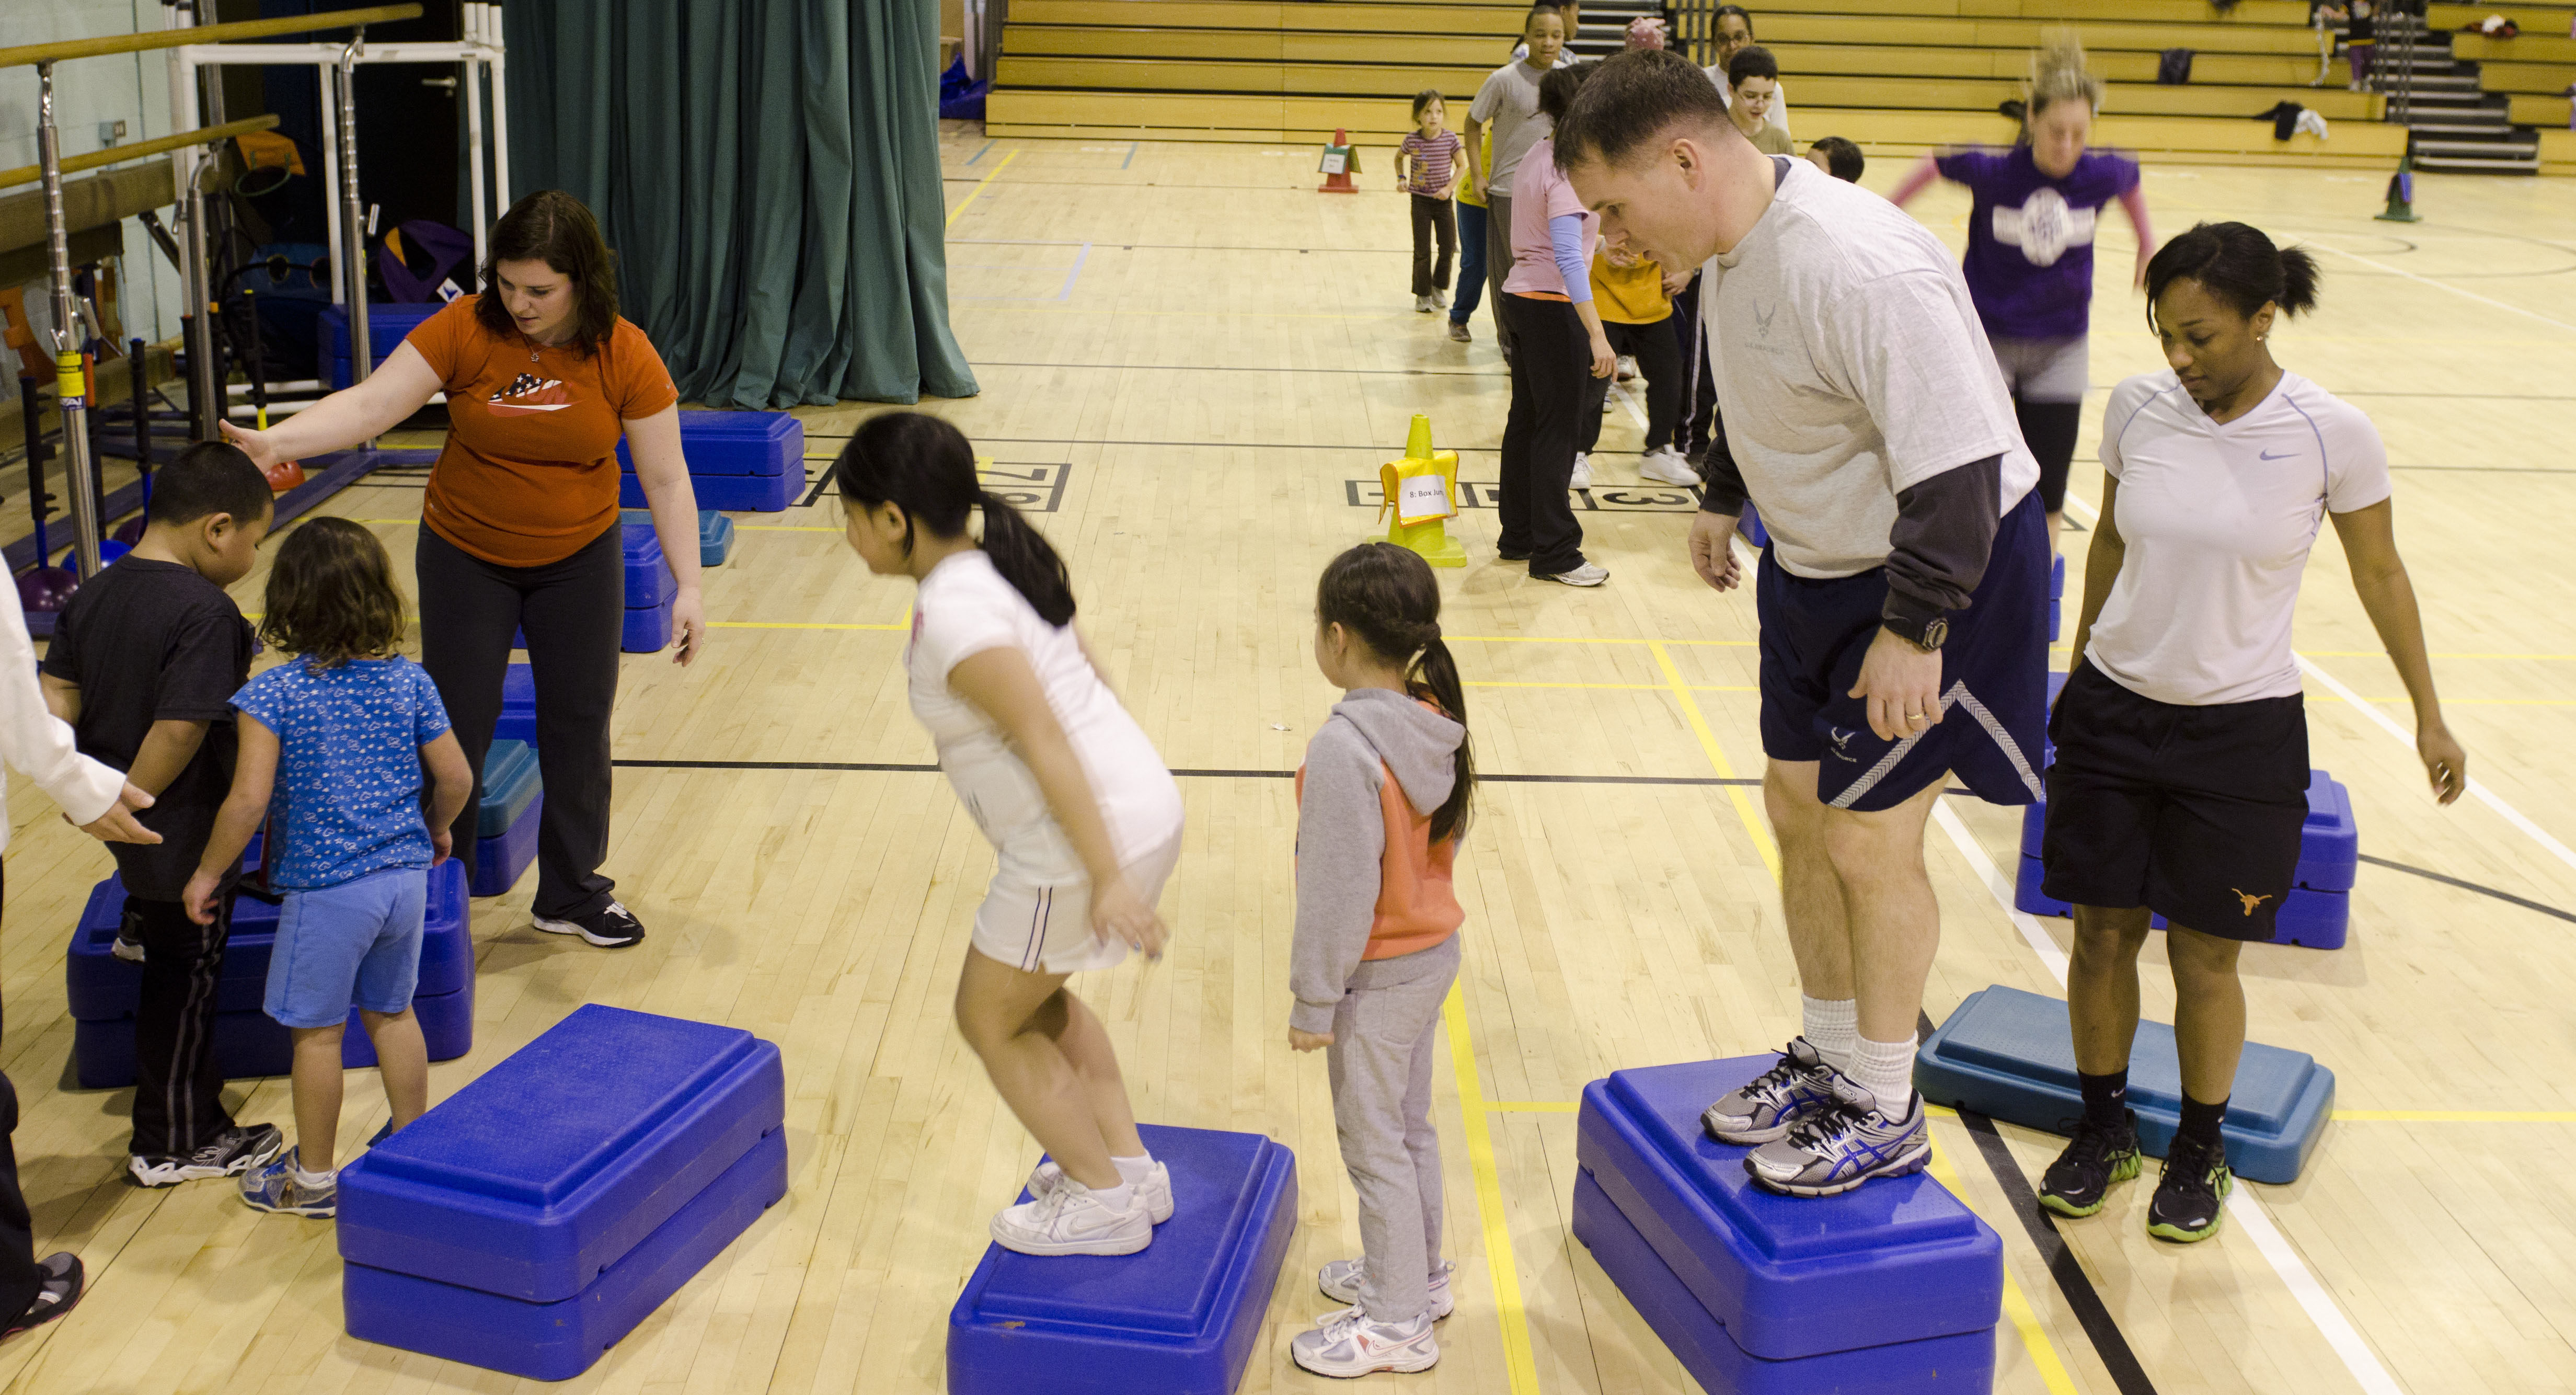 Reasons That Make Gym Class the Worst School Subject